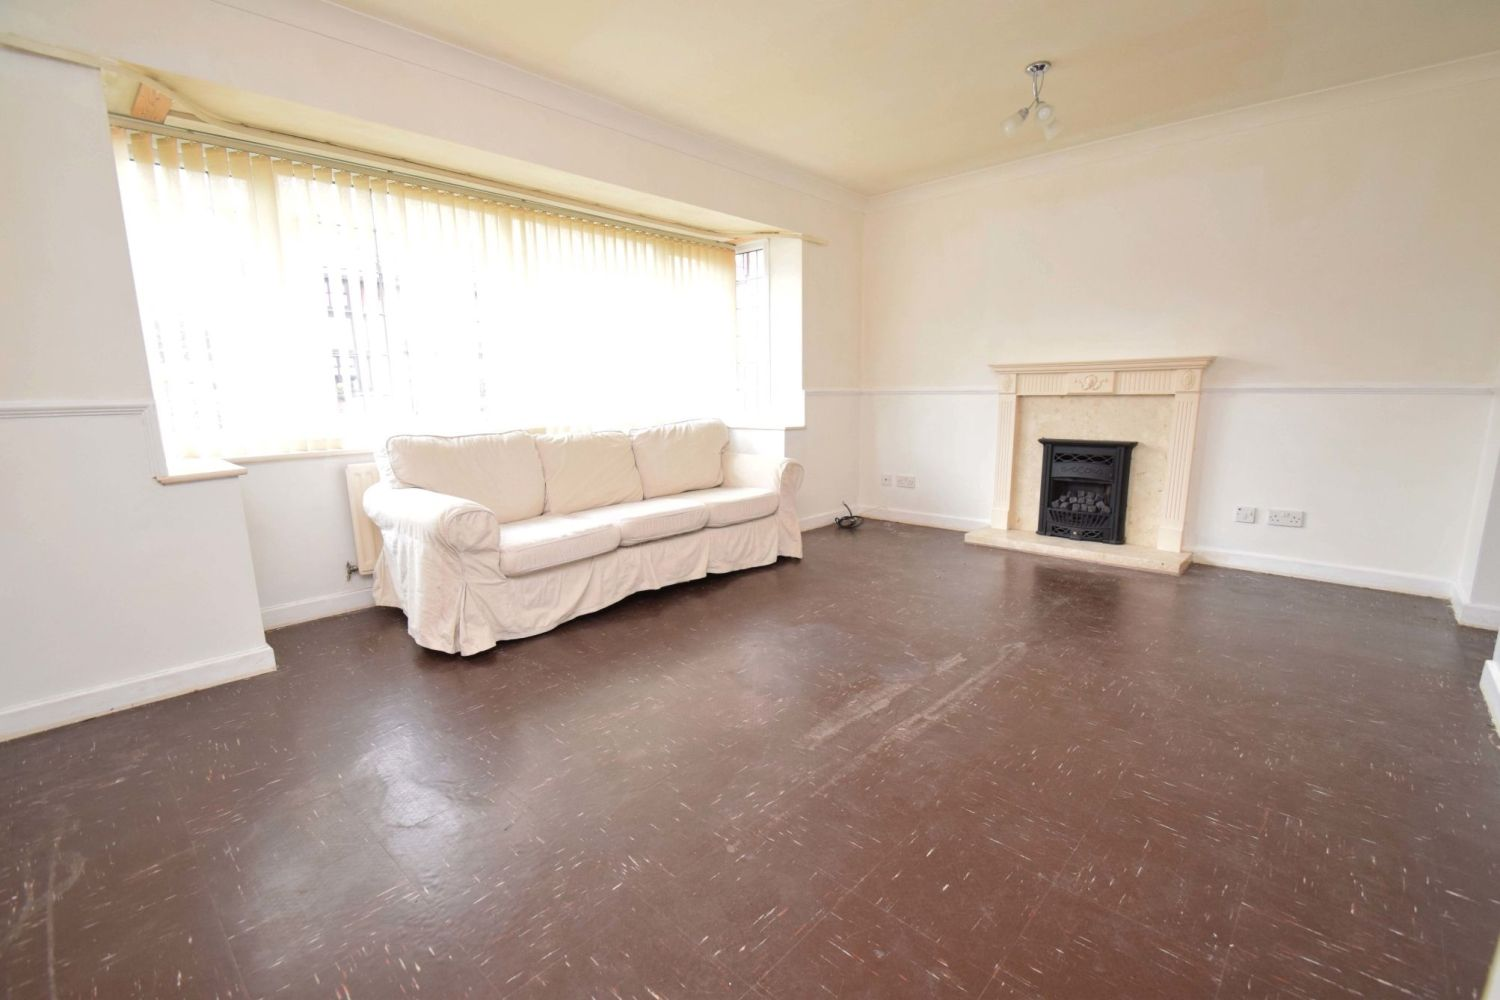 3 bed detached for sale in Avon Close, Stoke Heath, Bromsgrove, B60  - Property Image 3